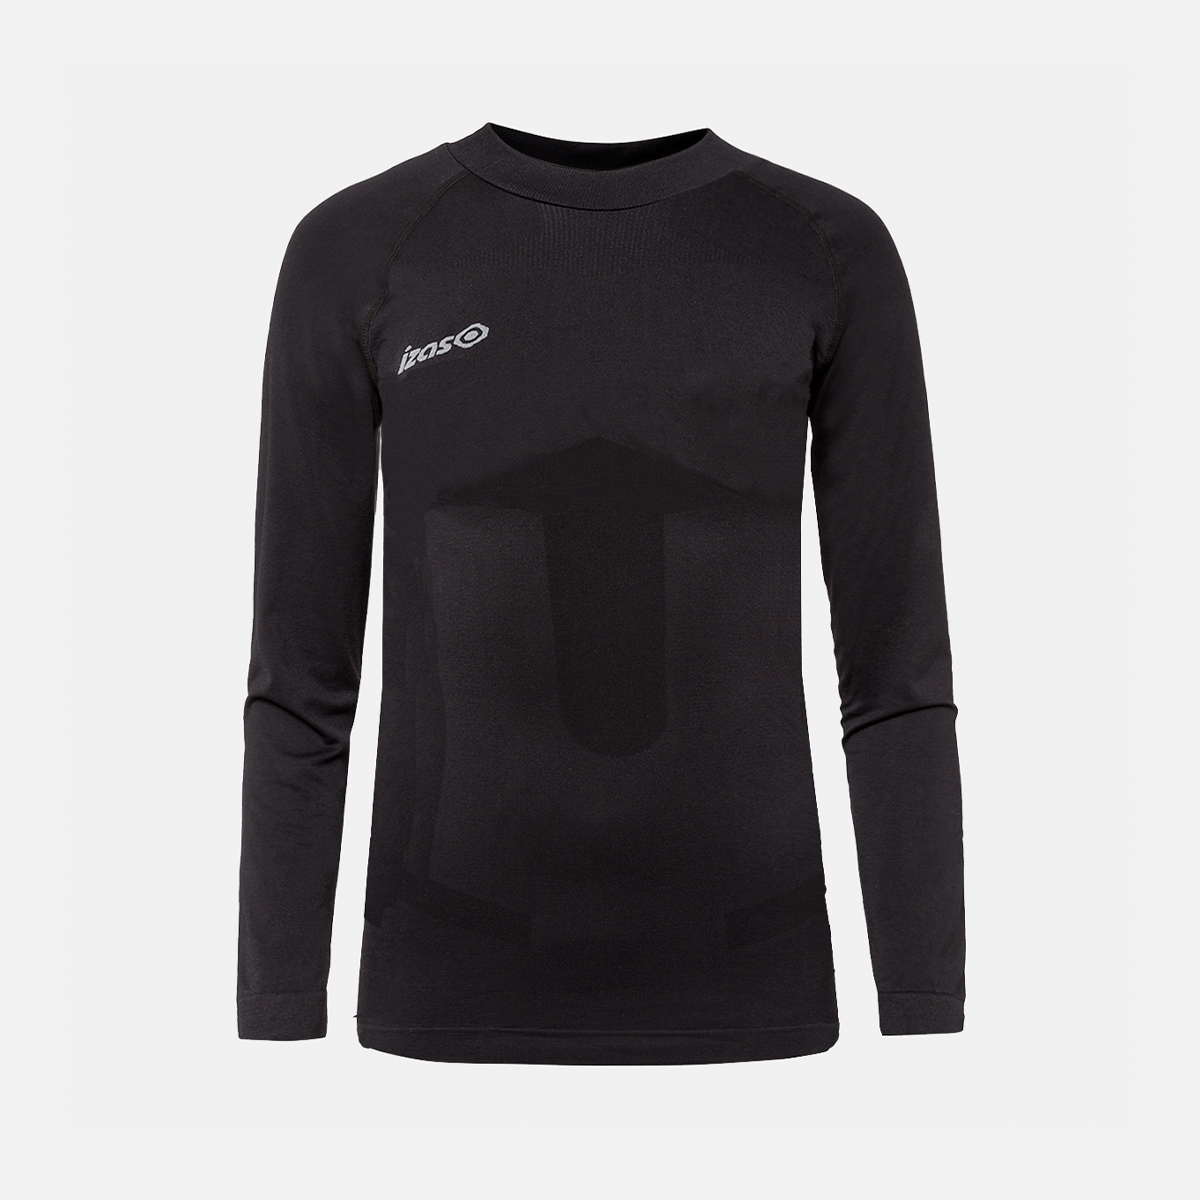 UNISEX'S SAREK THERMAL T-SHIRT BLACK